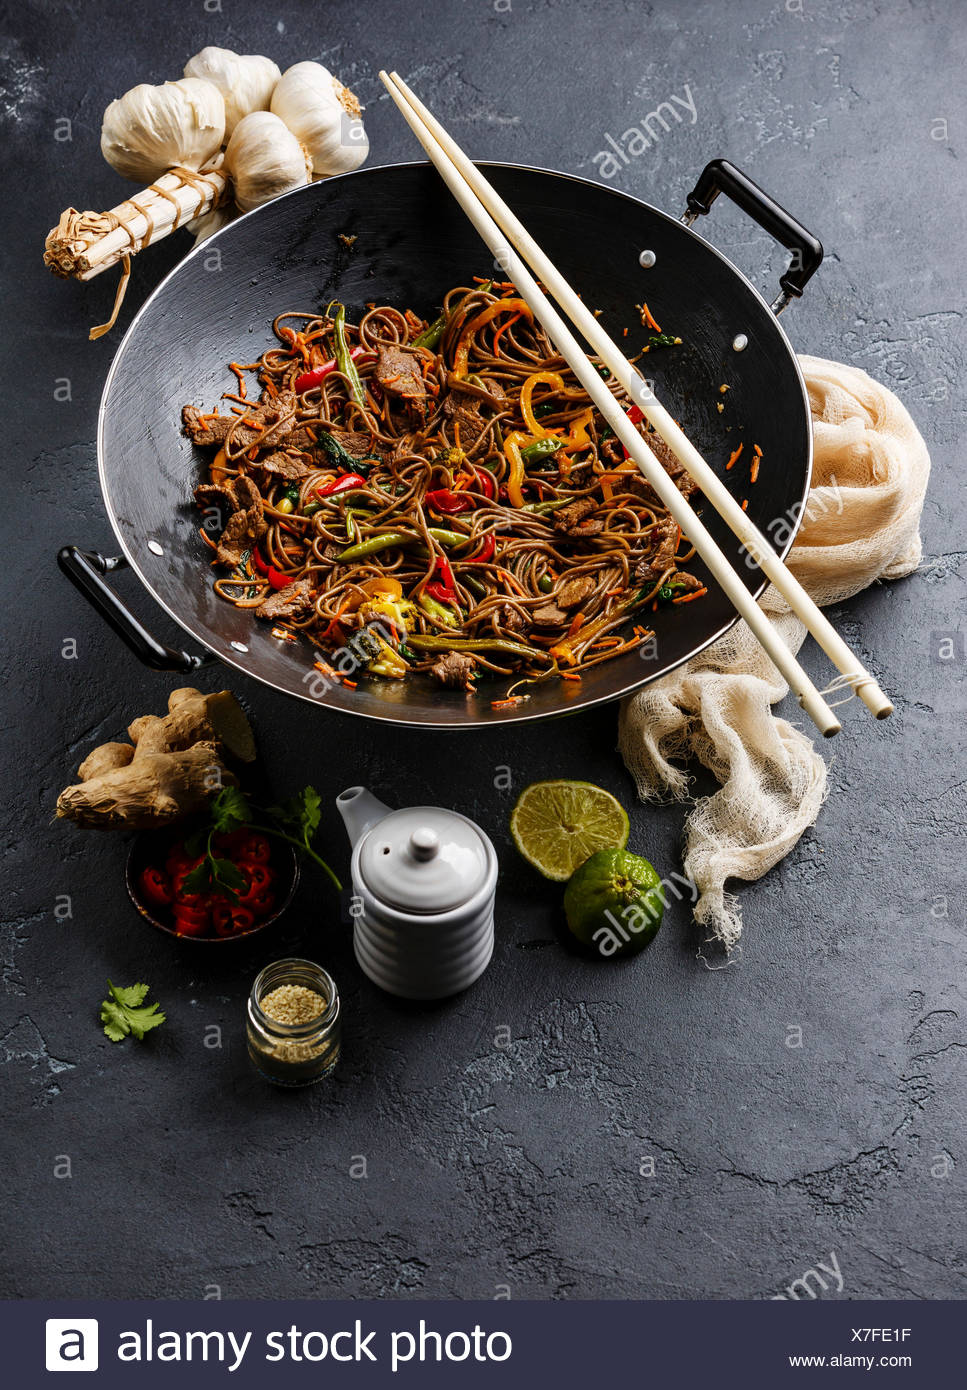 Asian fast food Stir fry noodles soba with beef and vegetables in wok pan on dark stone background Stock Photo